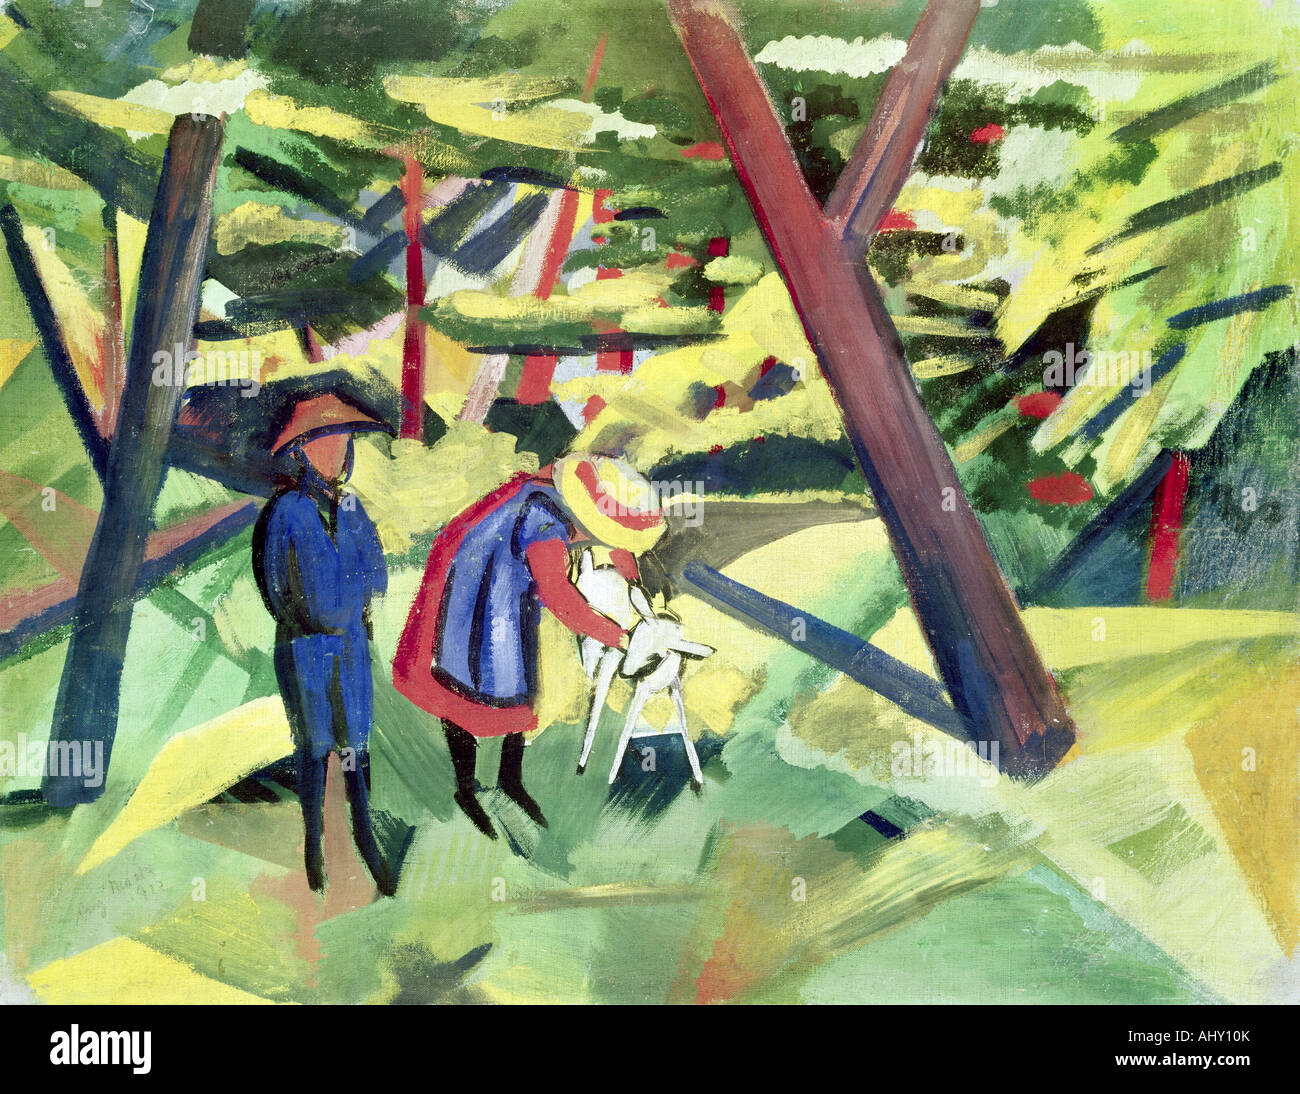 'fine arts, Macke, August, (1887 - 1914), painting, 'Kinder mit Ziege im Wald', ('children with - Stock Image